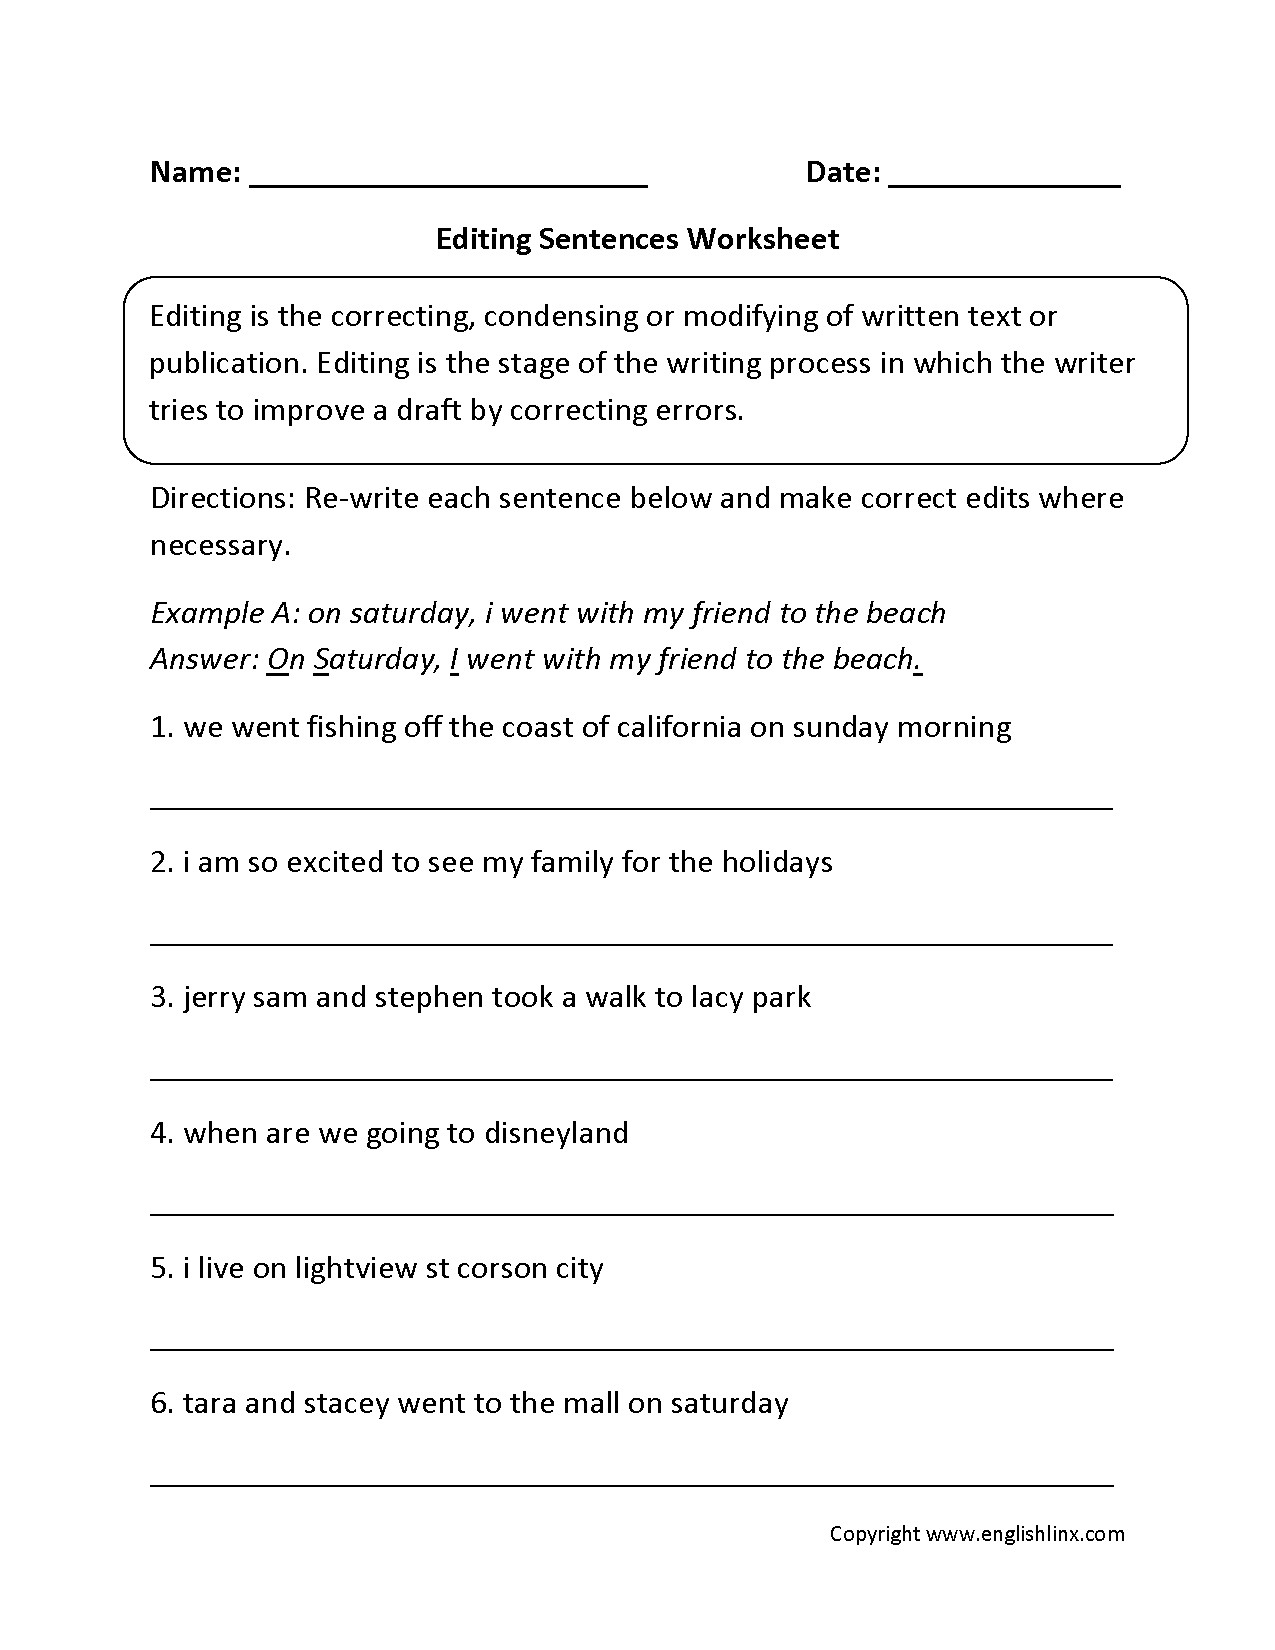 Editing Worksheet 3rd Grade Editing Worksheet Sentece